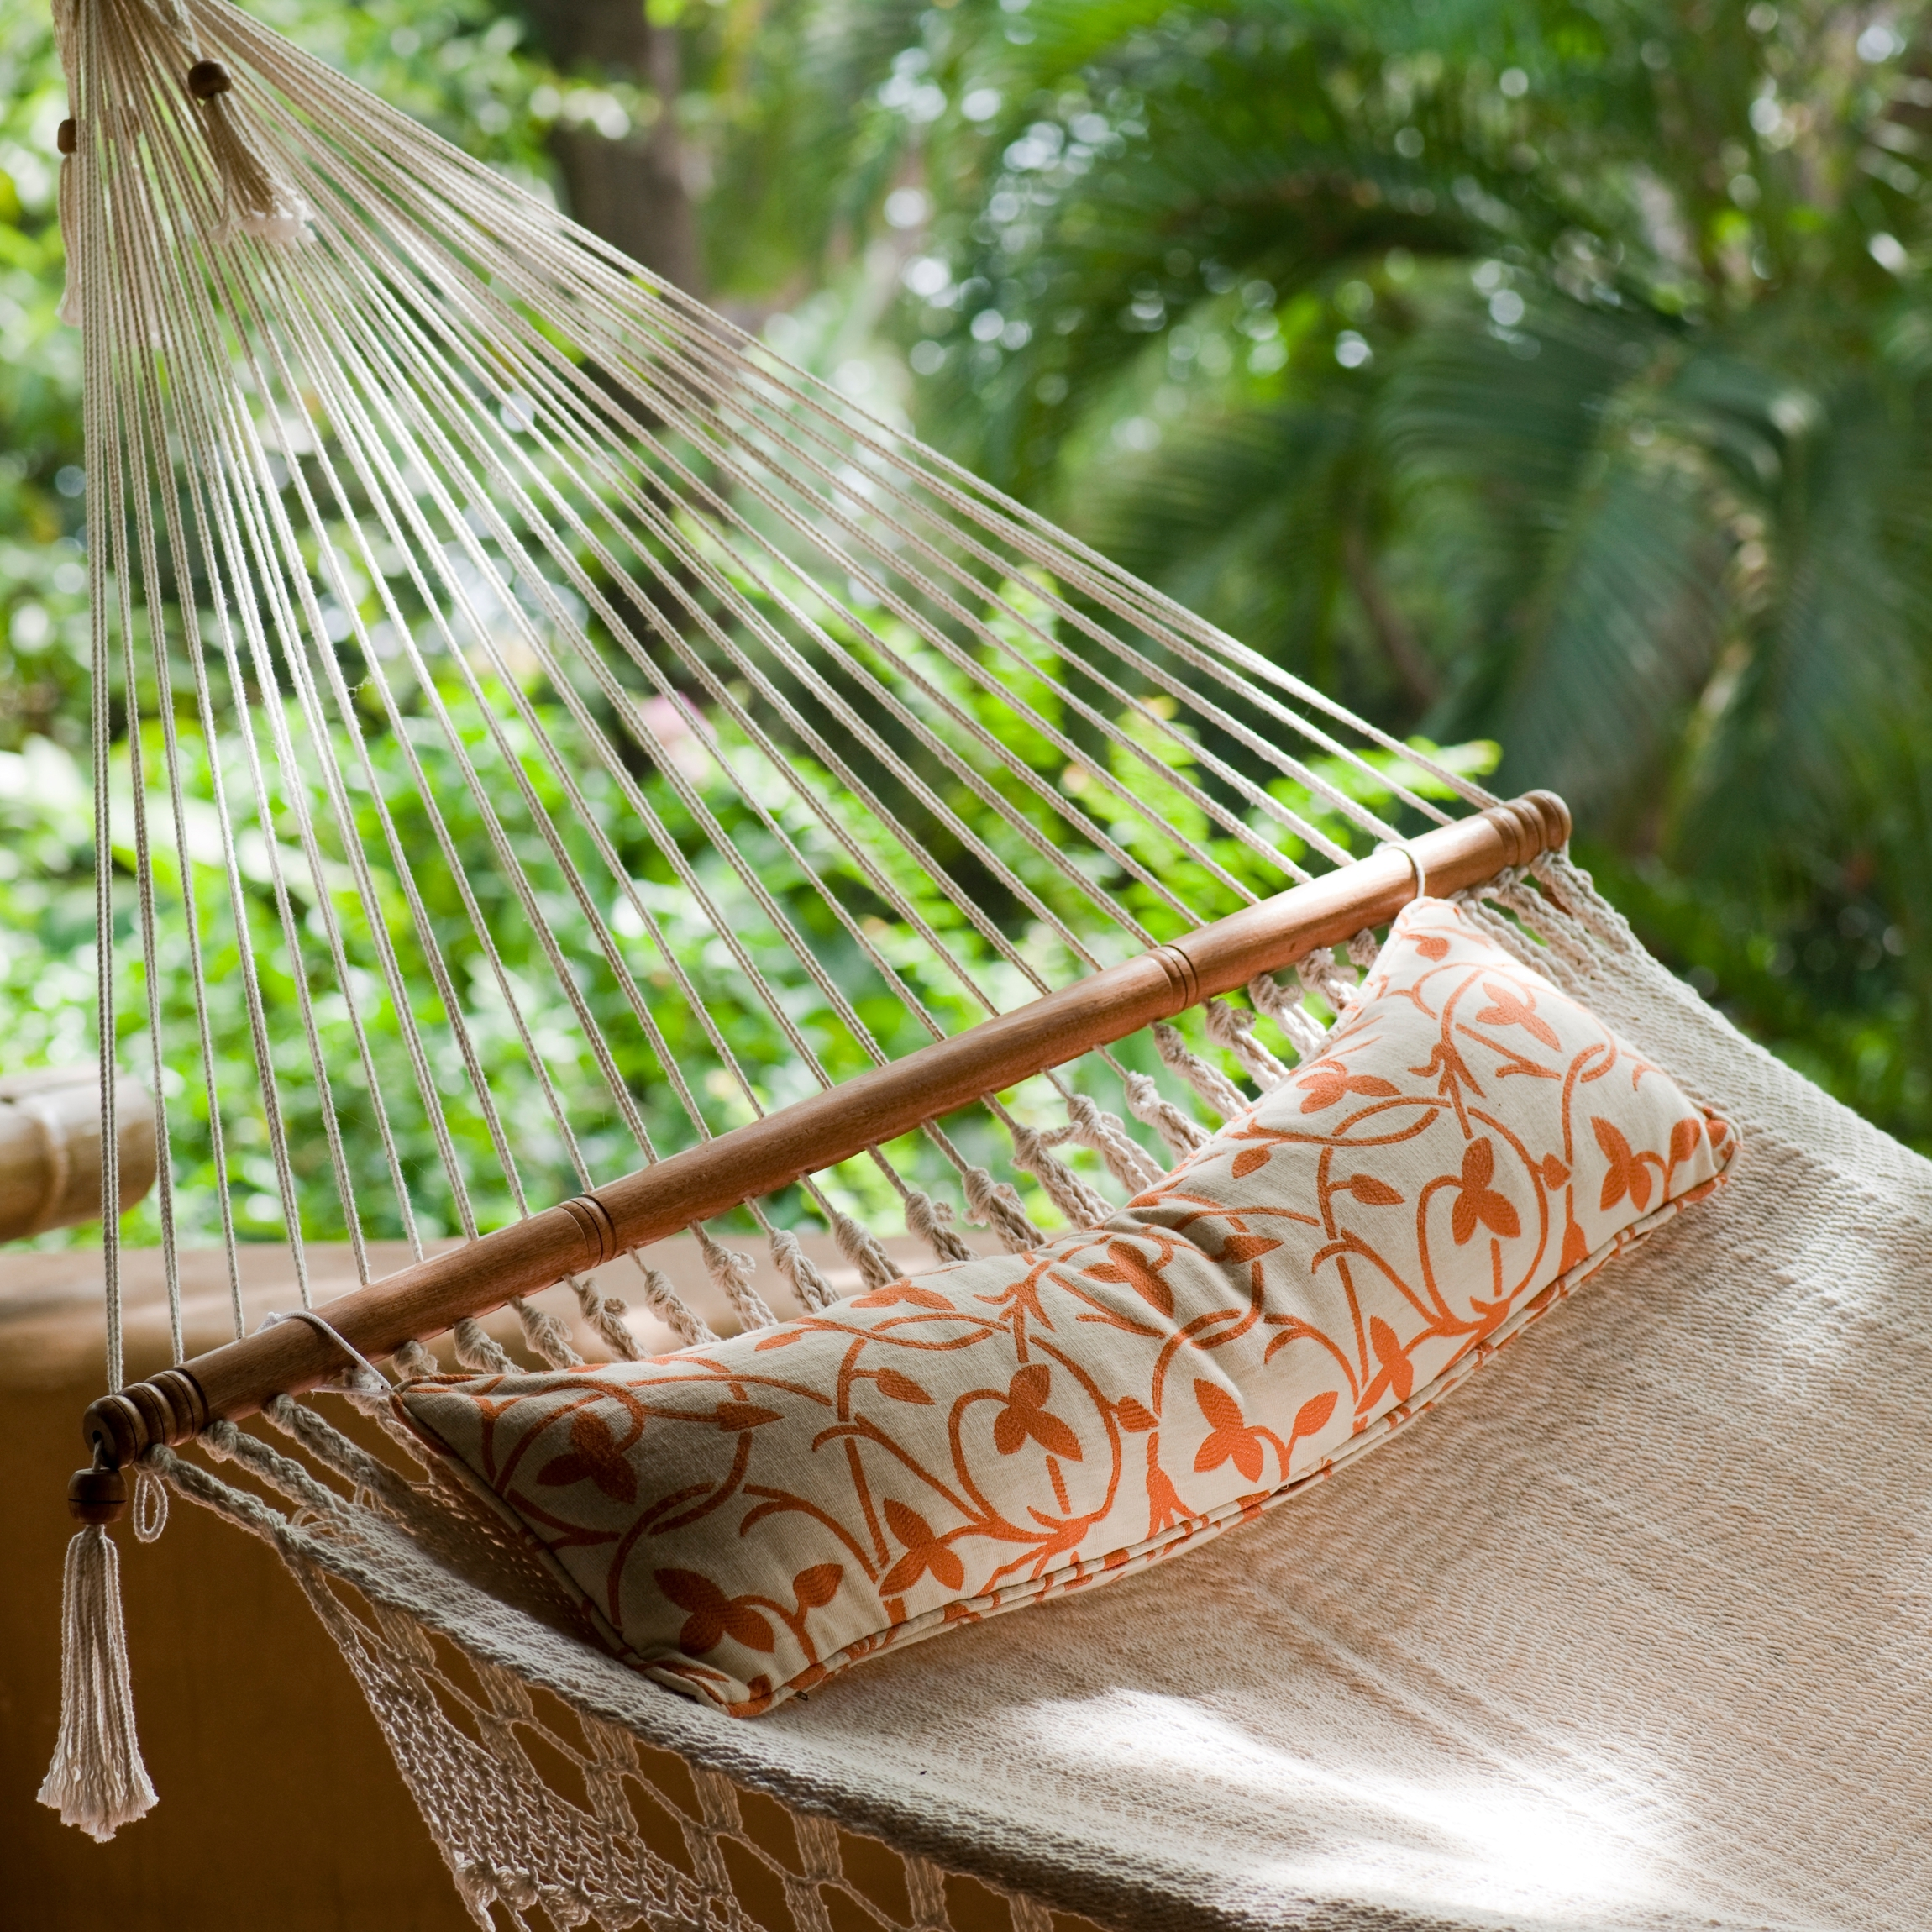 hammock with plants in background